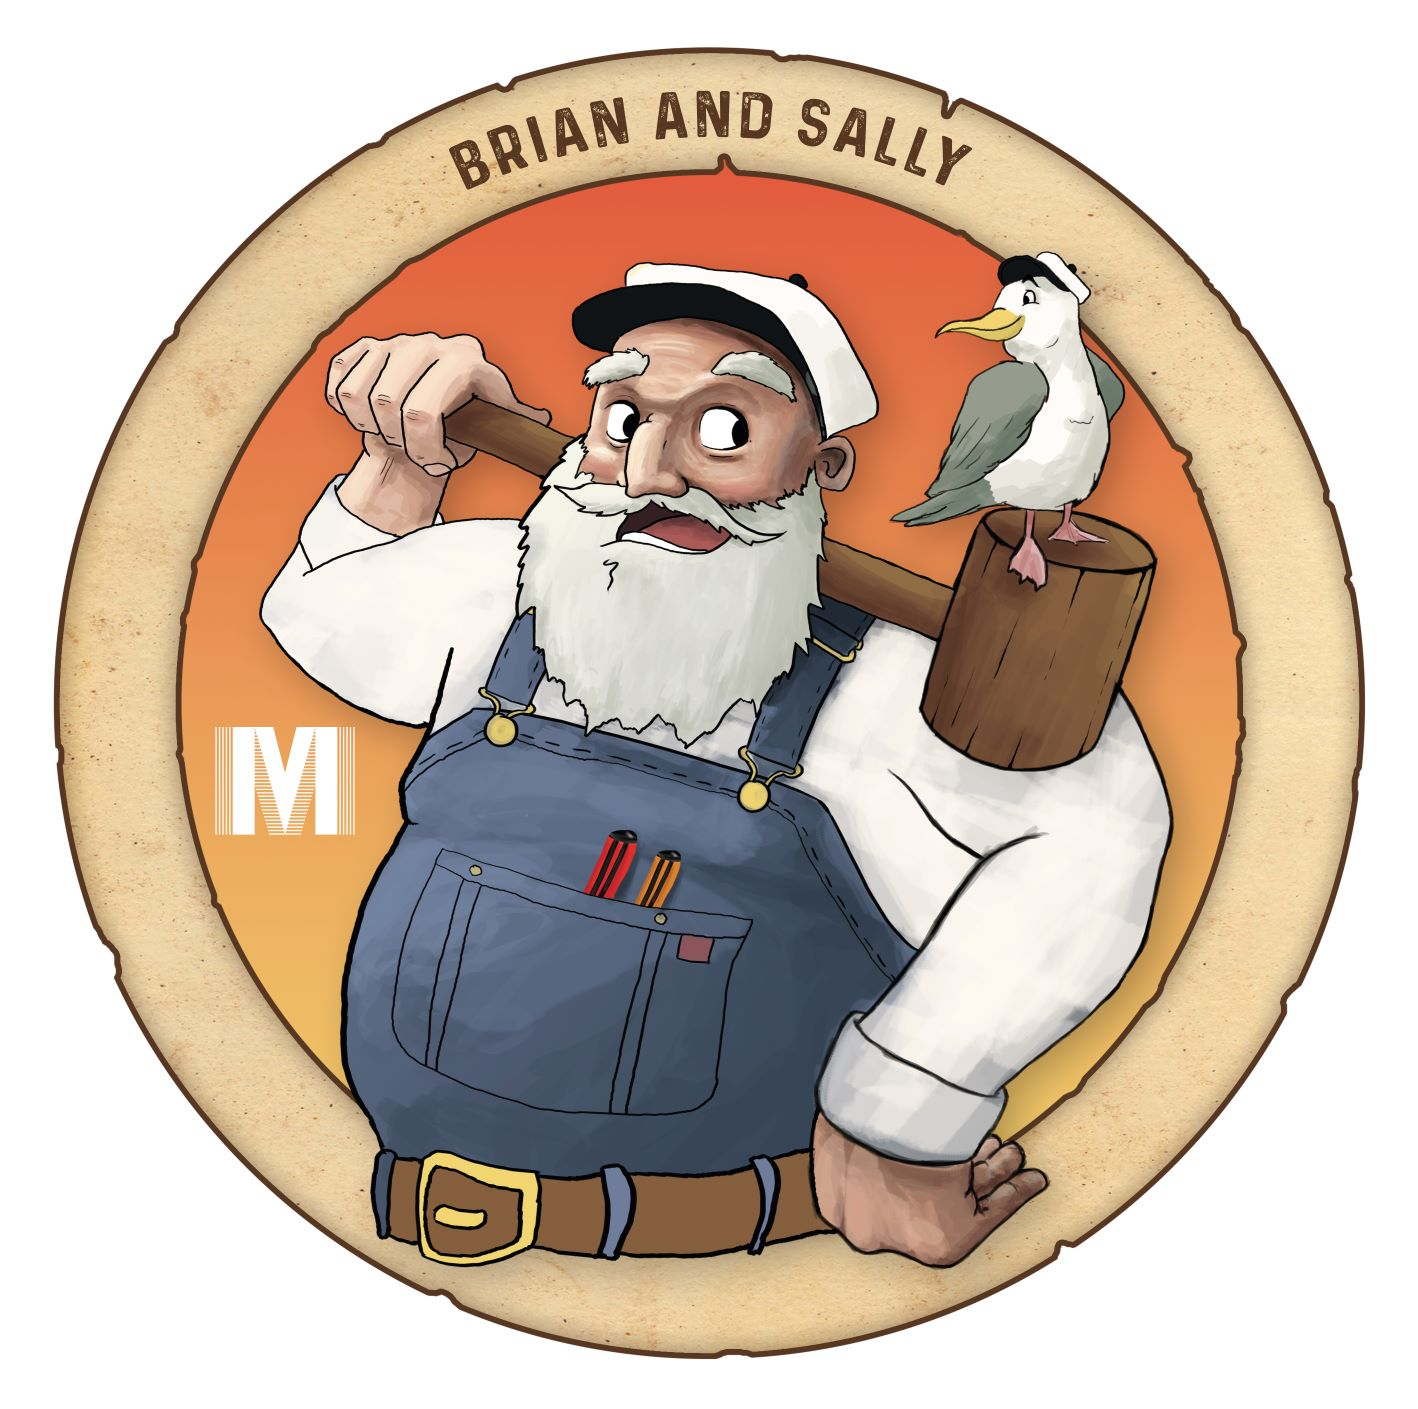 https://rfacdn.nz/maritime/assets/media/brian-and-sally-sticker.jpg